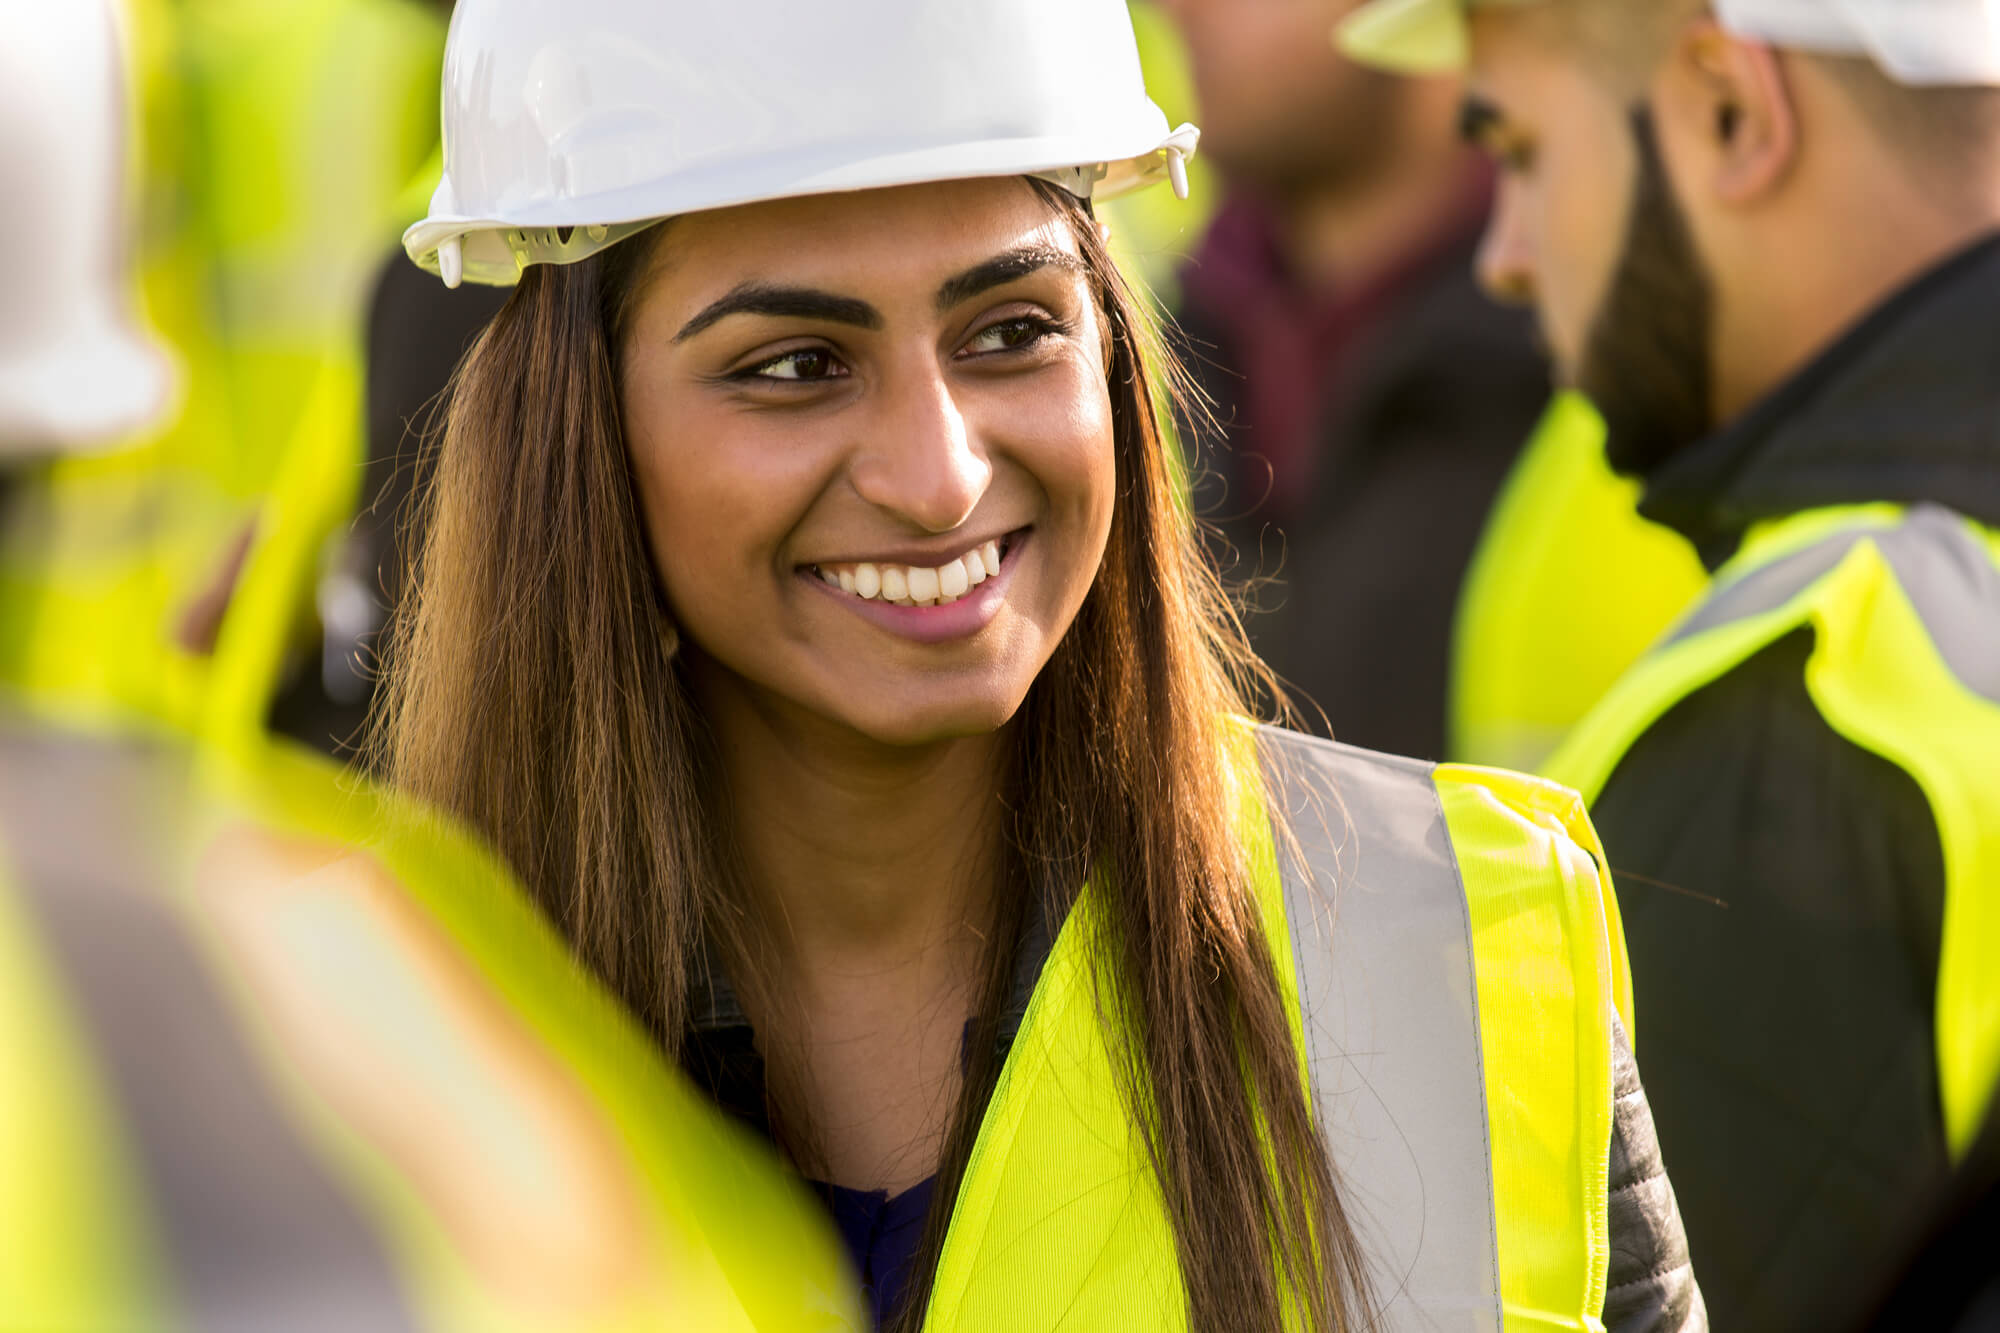 Construction and Civil Engineering student wearing hi-vis jacket and hard hat on a visit to a Radleigh Homes housing site